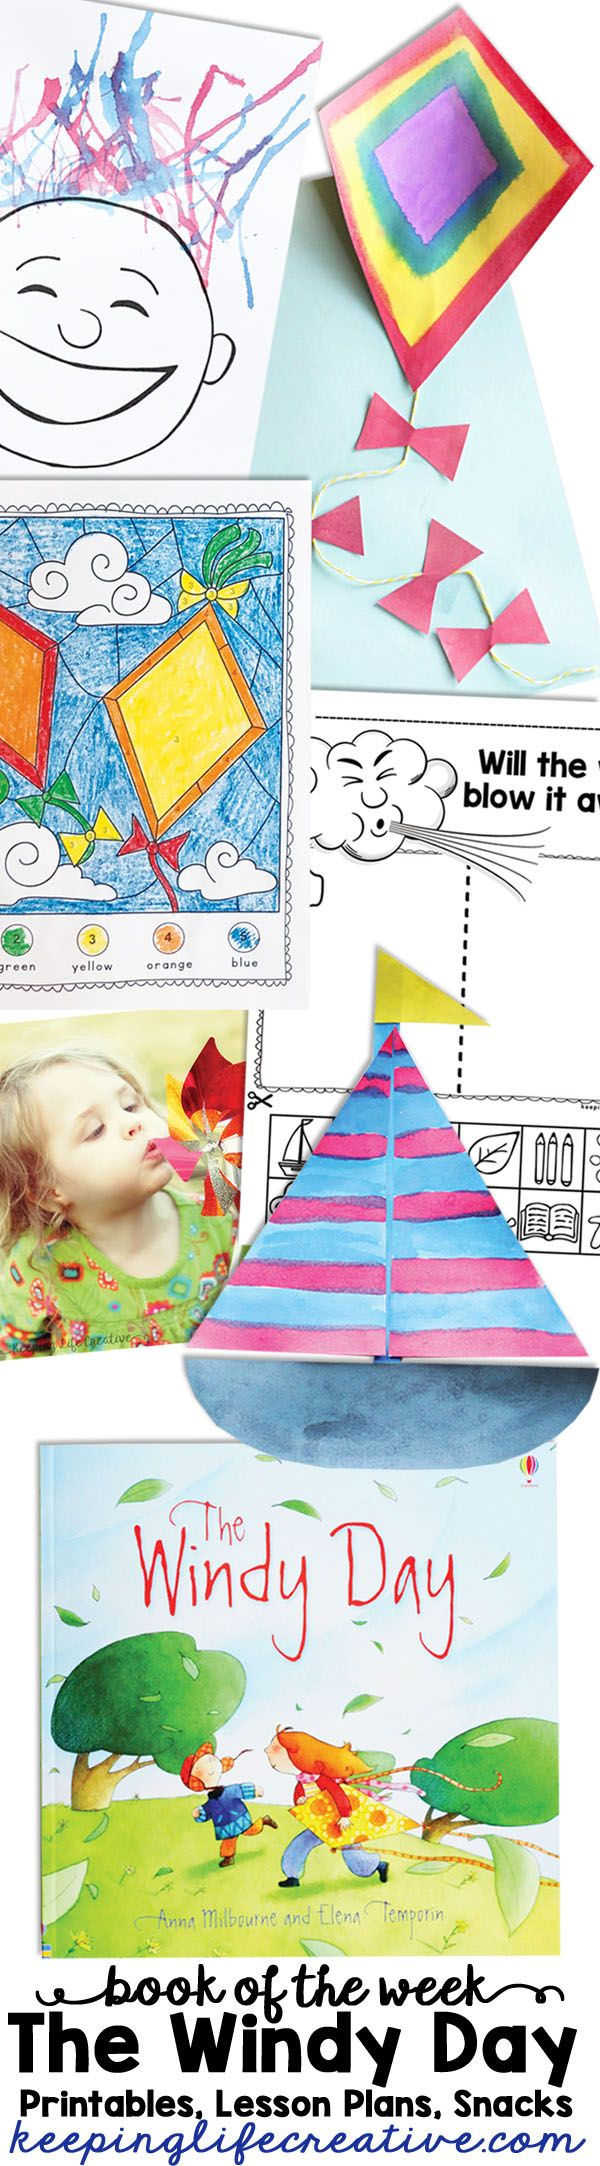 Printable activities, lesson plans, and snack ideas to compliment The Windy Day by Anna Milbourne. Such a fun way to teach kids about the wind this spring!